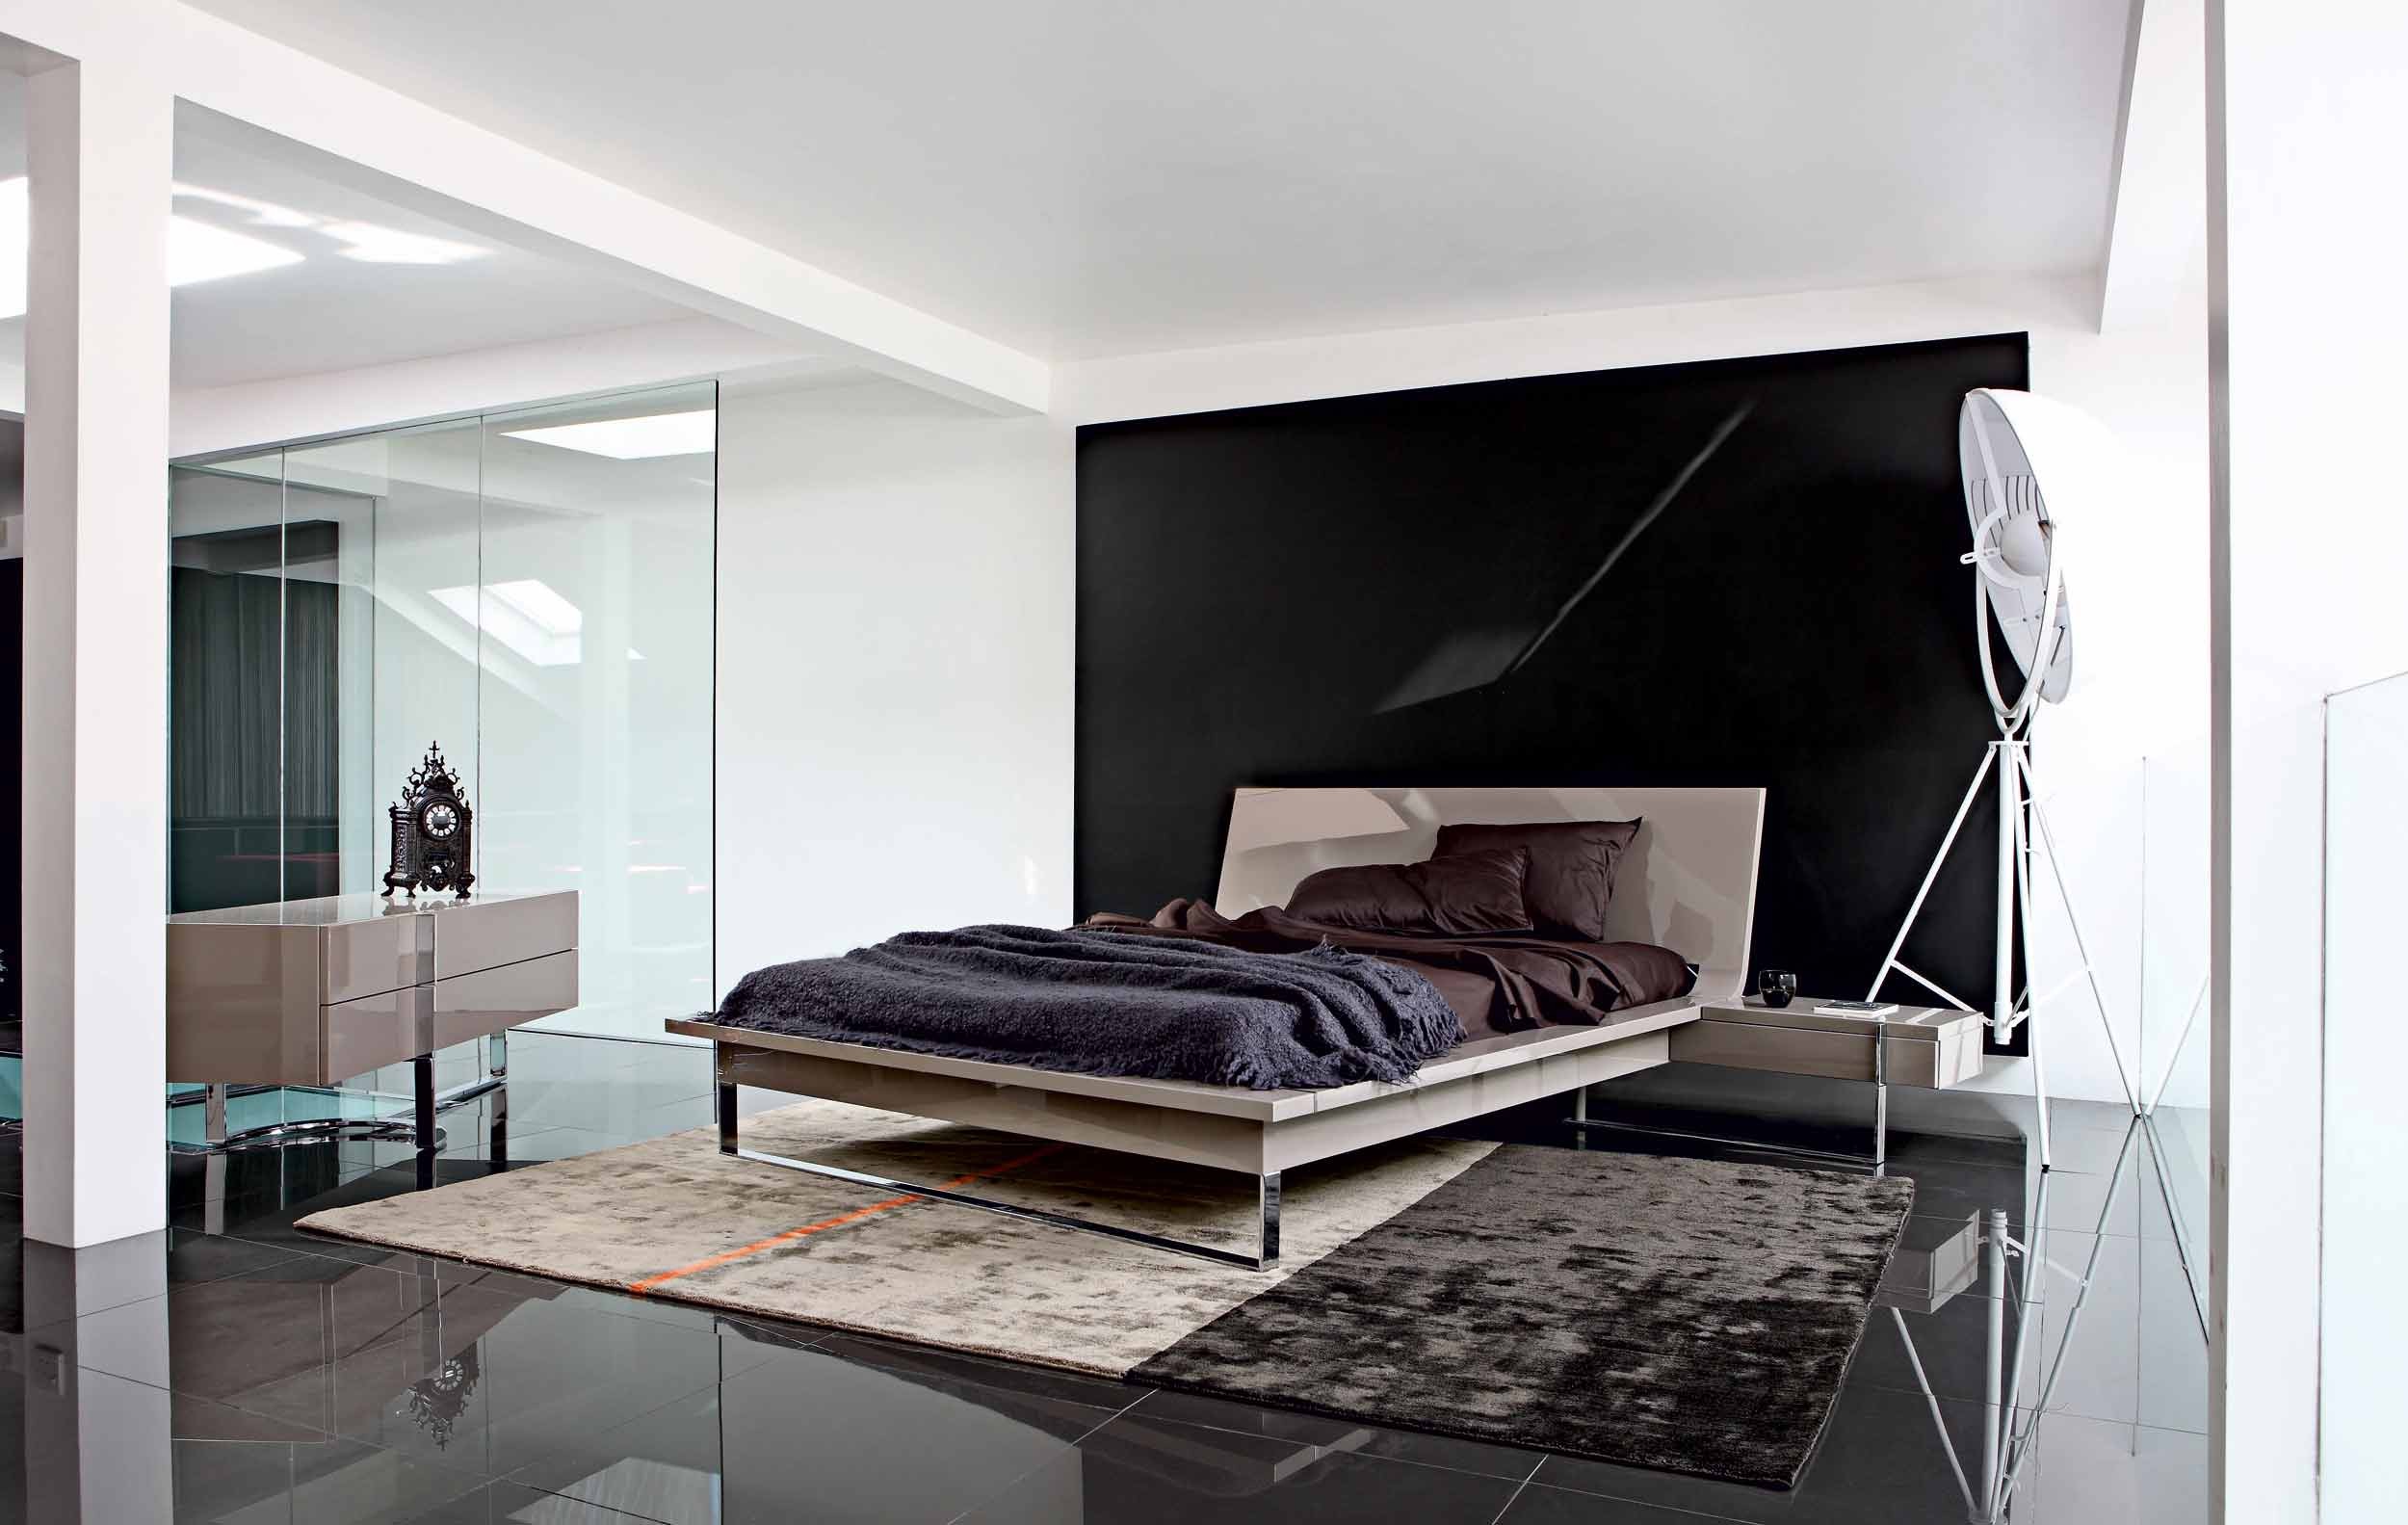 Minimalist bedroom interior design ideas for Minimalist bedroom ideas